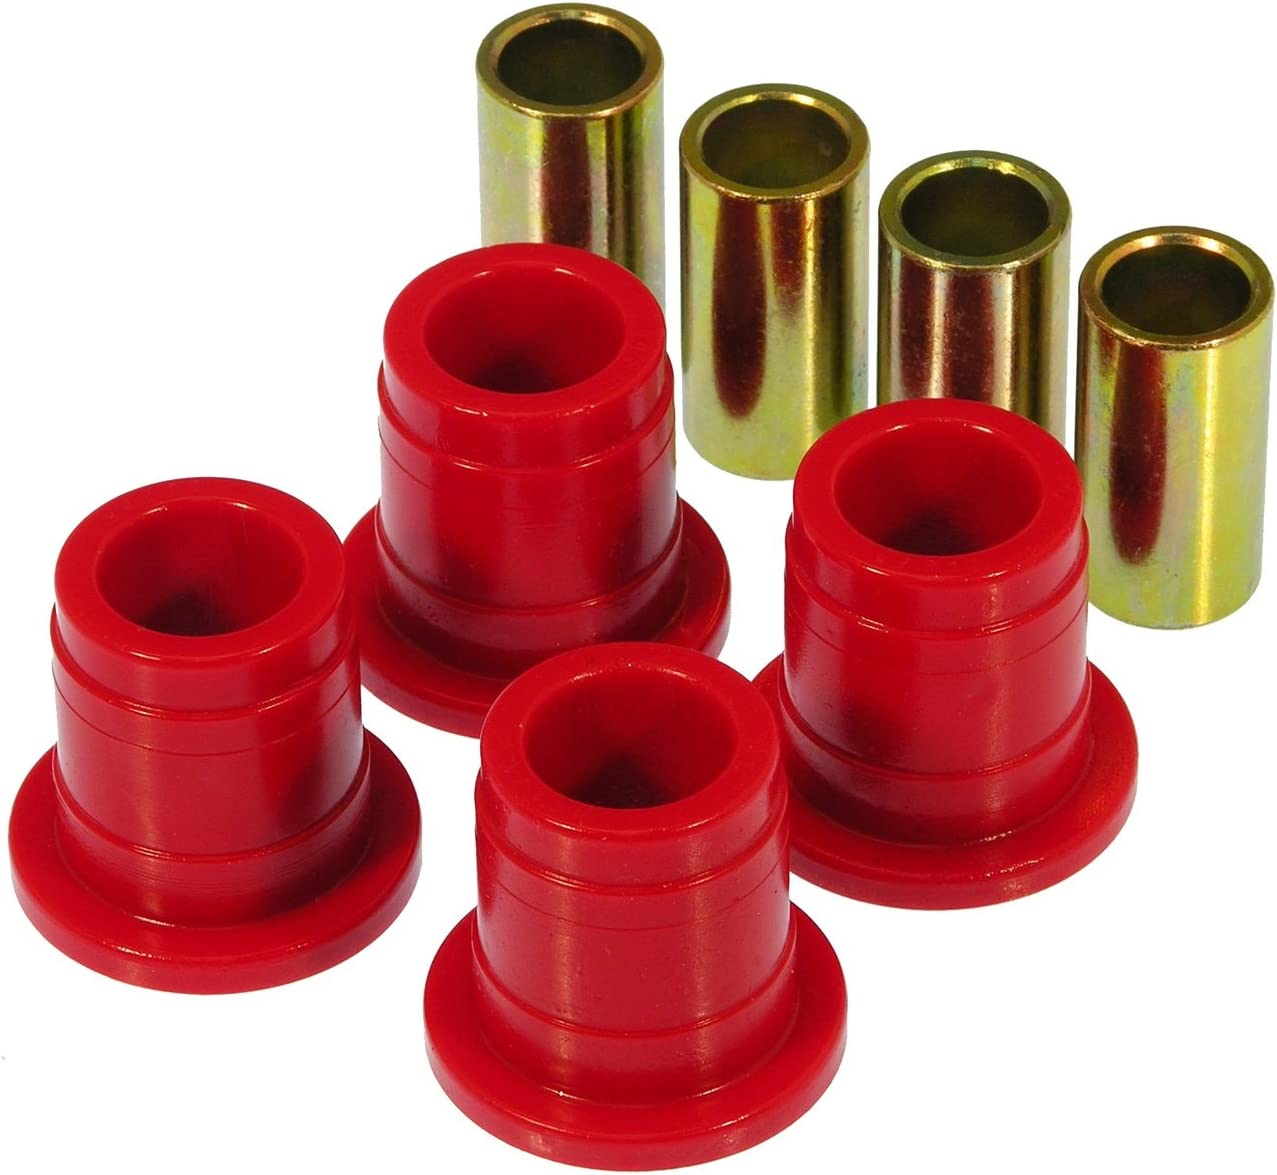 New Shipping Free Prothane 7-202 Red San Jose Mall Front Control Upper Kit Bushing Arm